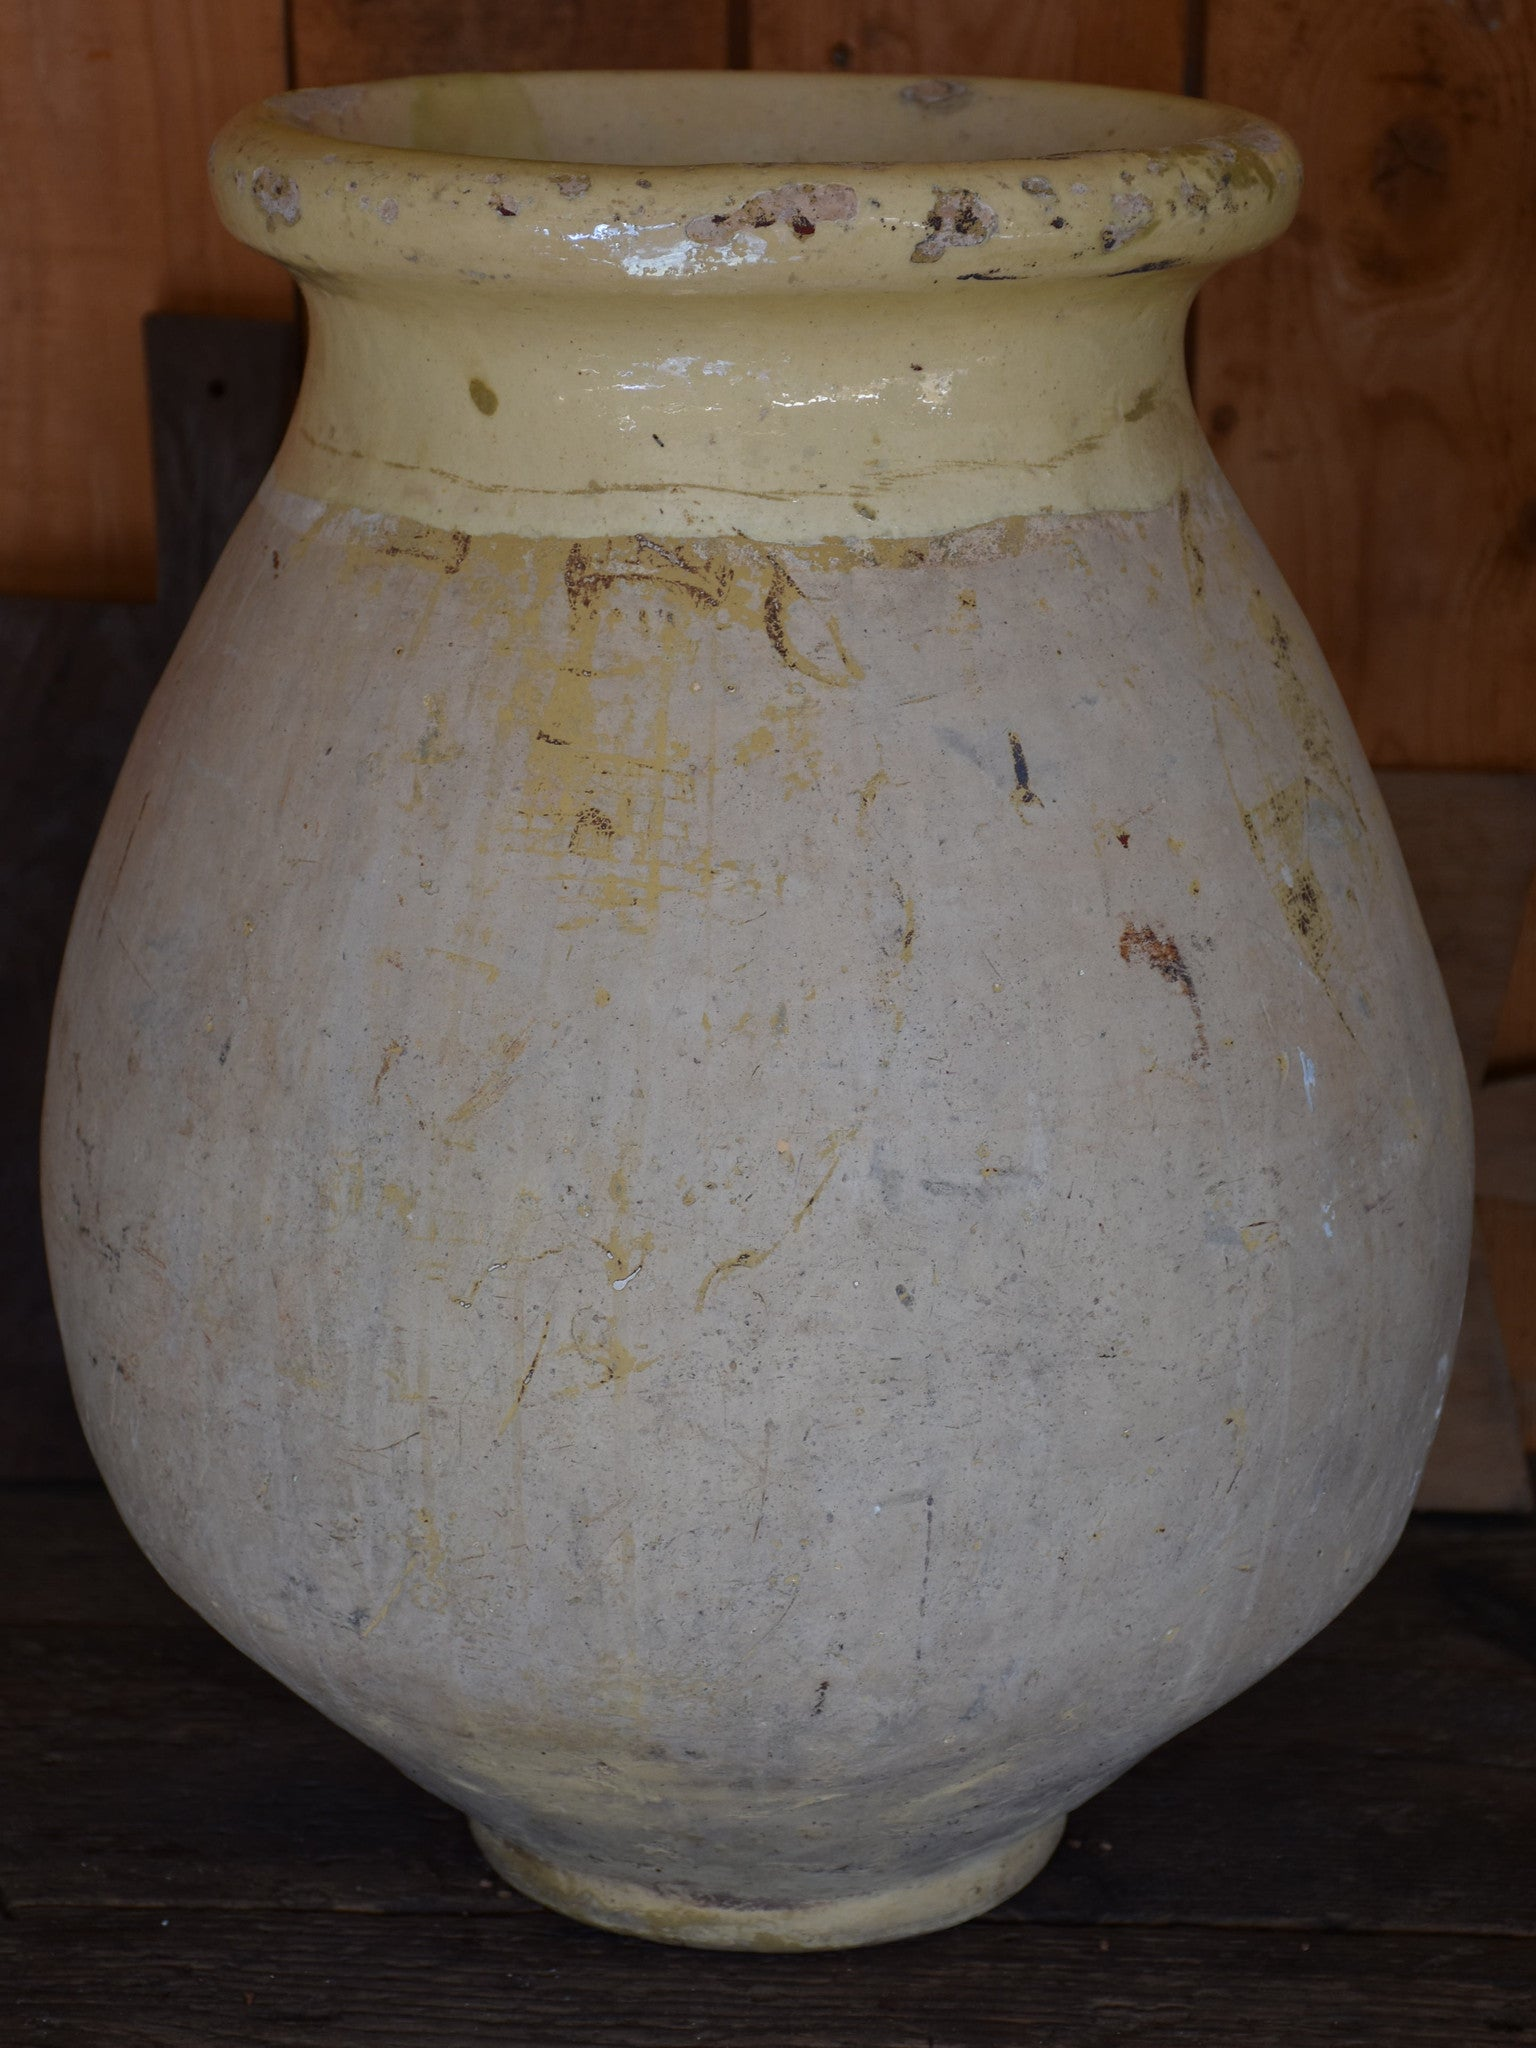 19th century French Biot jar - 20¾""